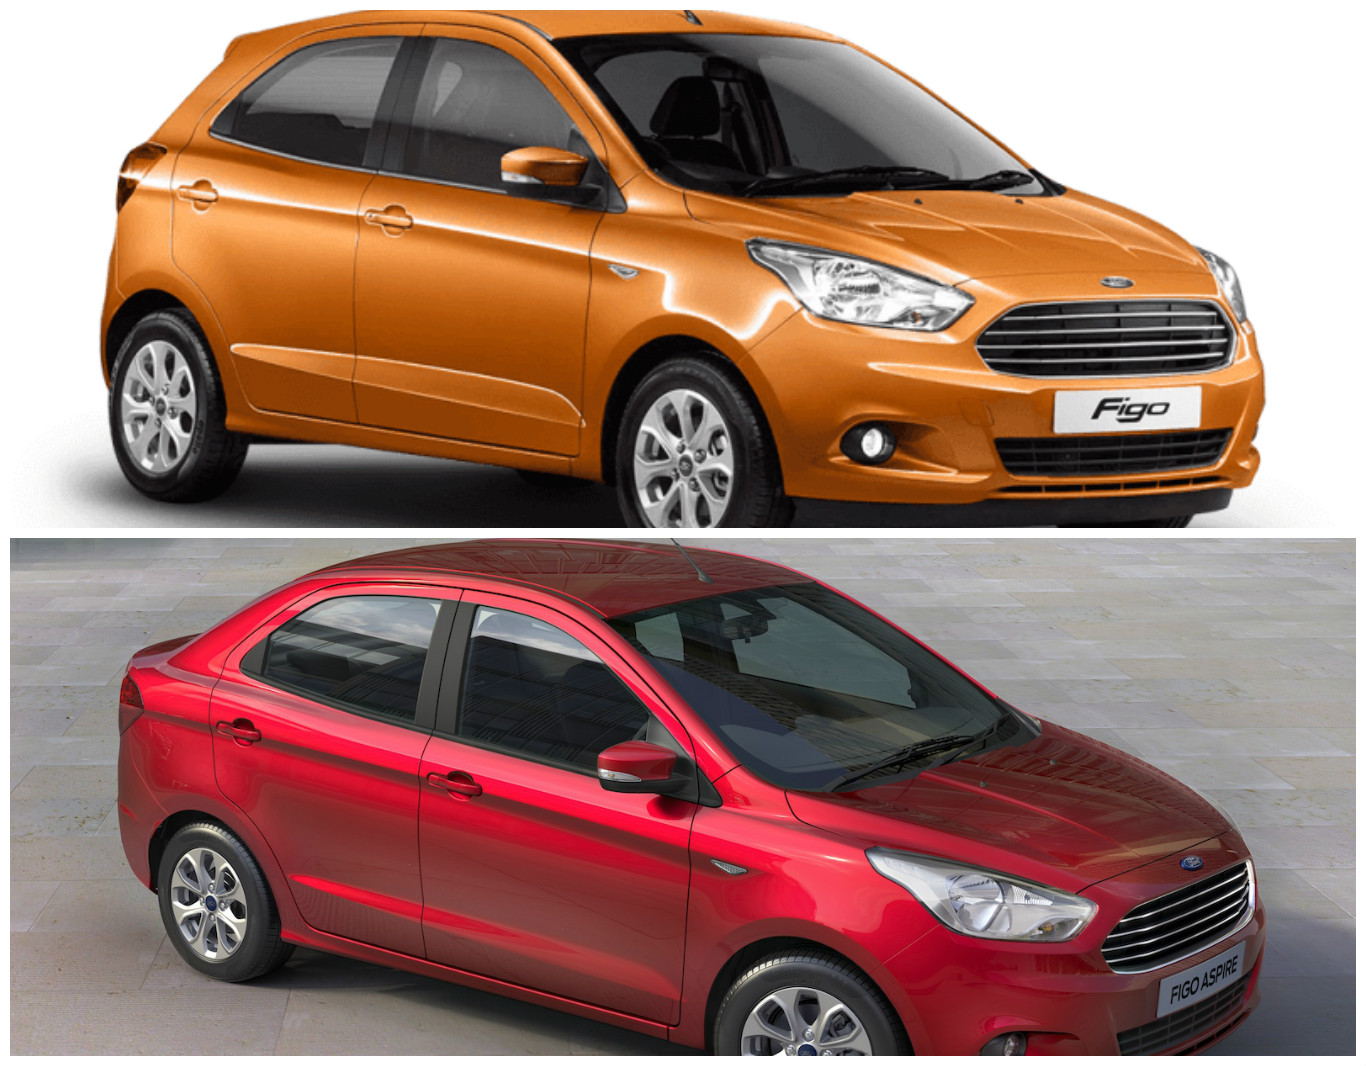 Diwali 2016 Offer On Ford Cars Get Cash Discount Of Inr 91 000 On